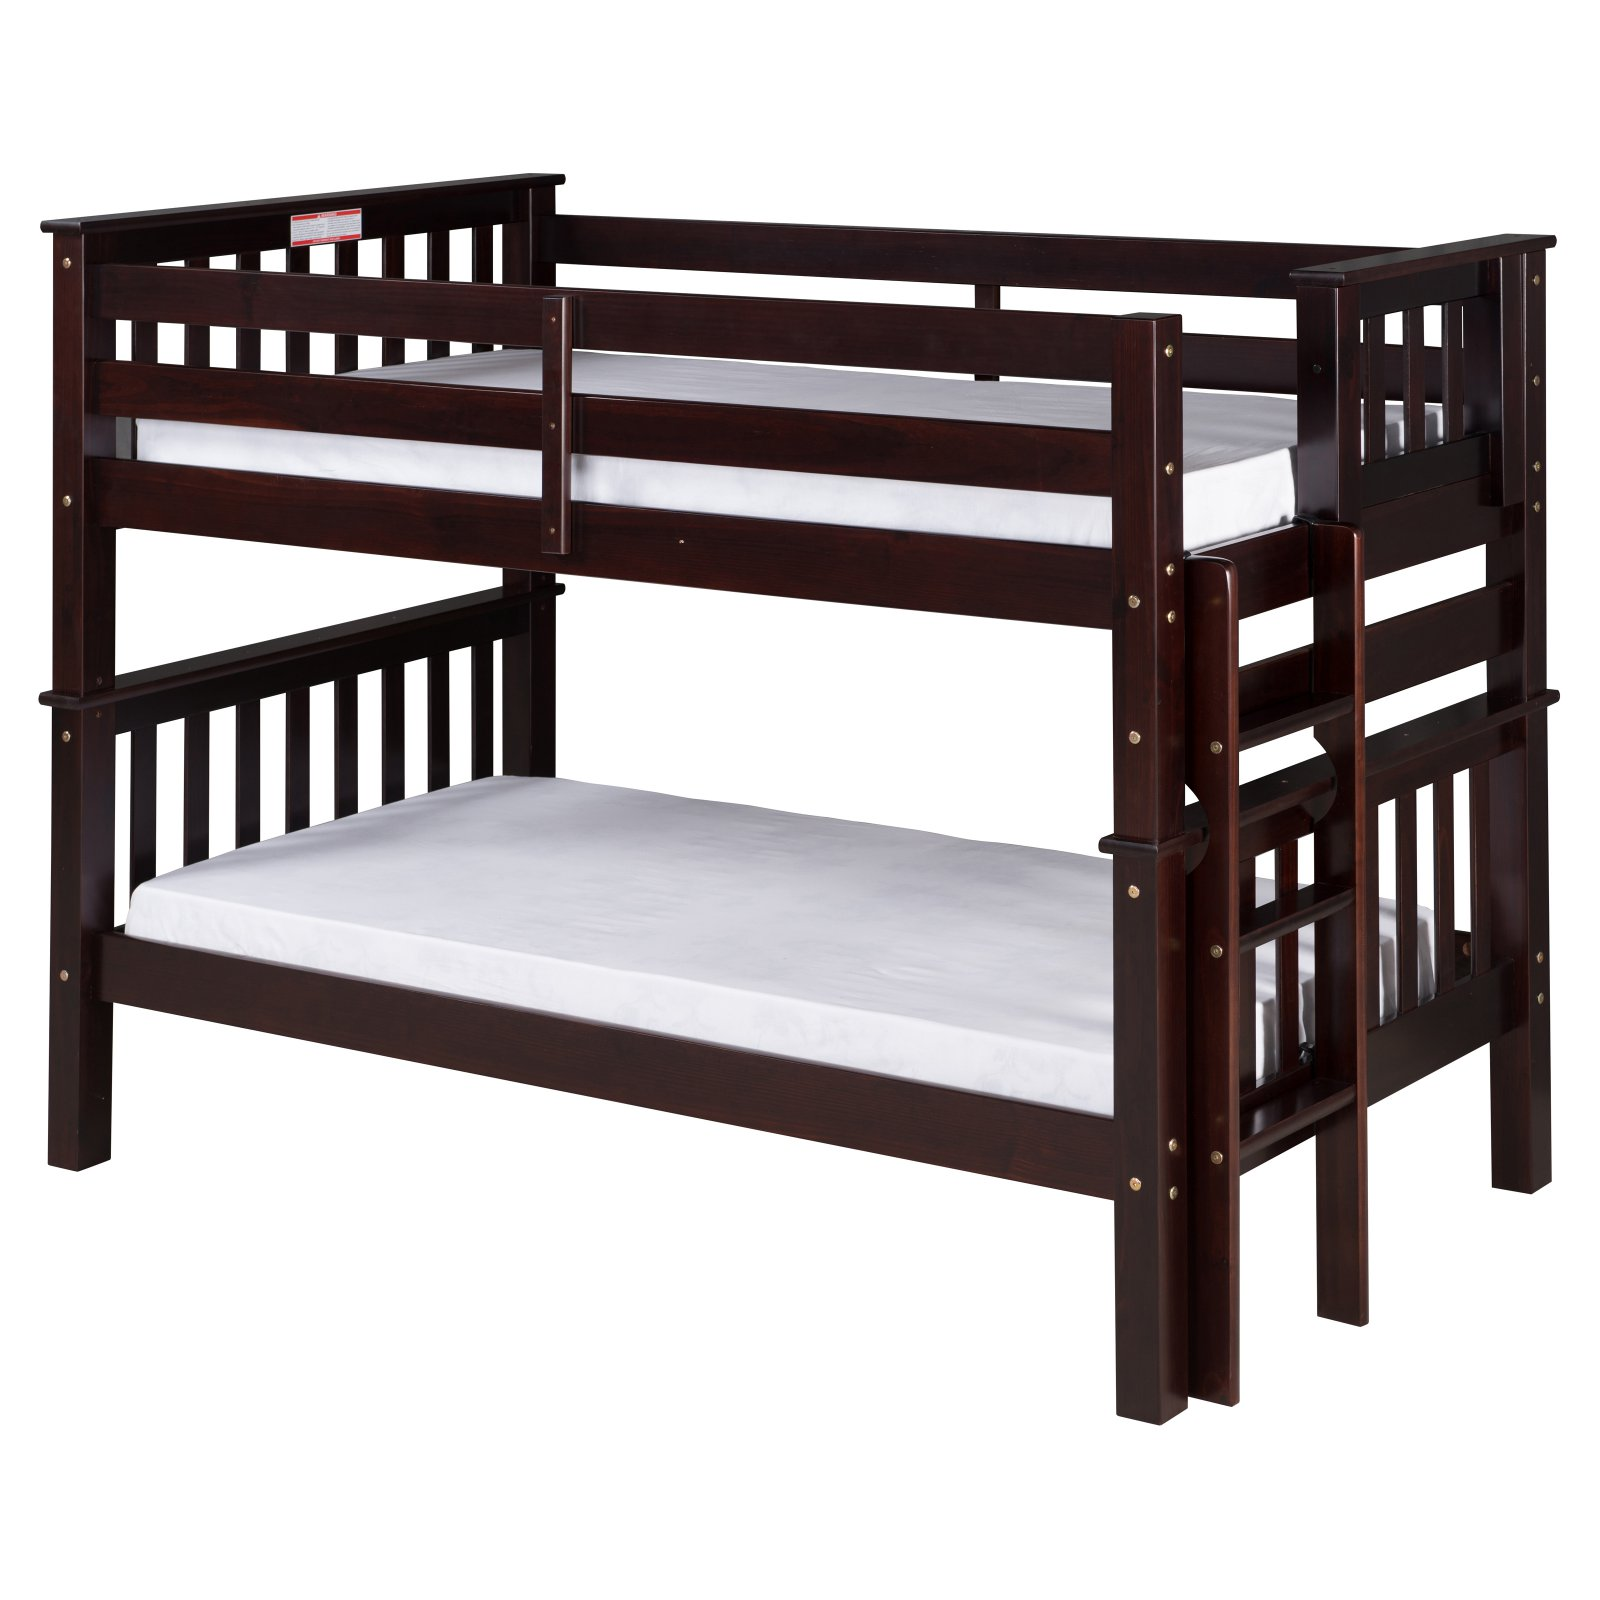 Santa Fe Mission Low Bunk Bed Twin over Twin - Bed End Ladder - Multiple Finishes